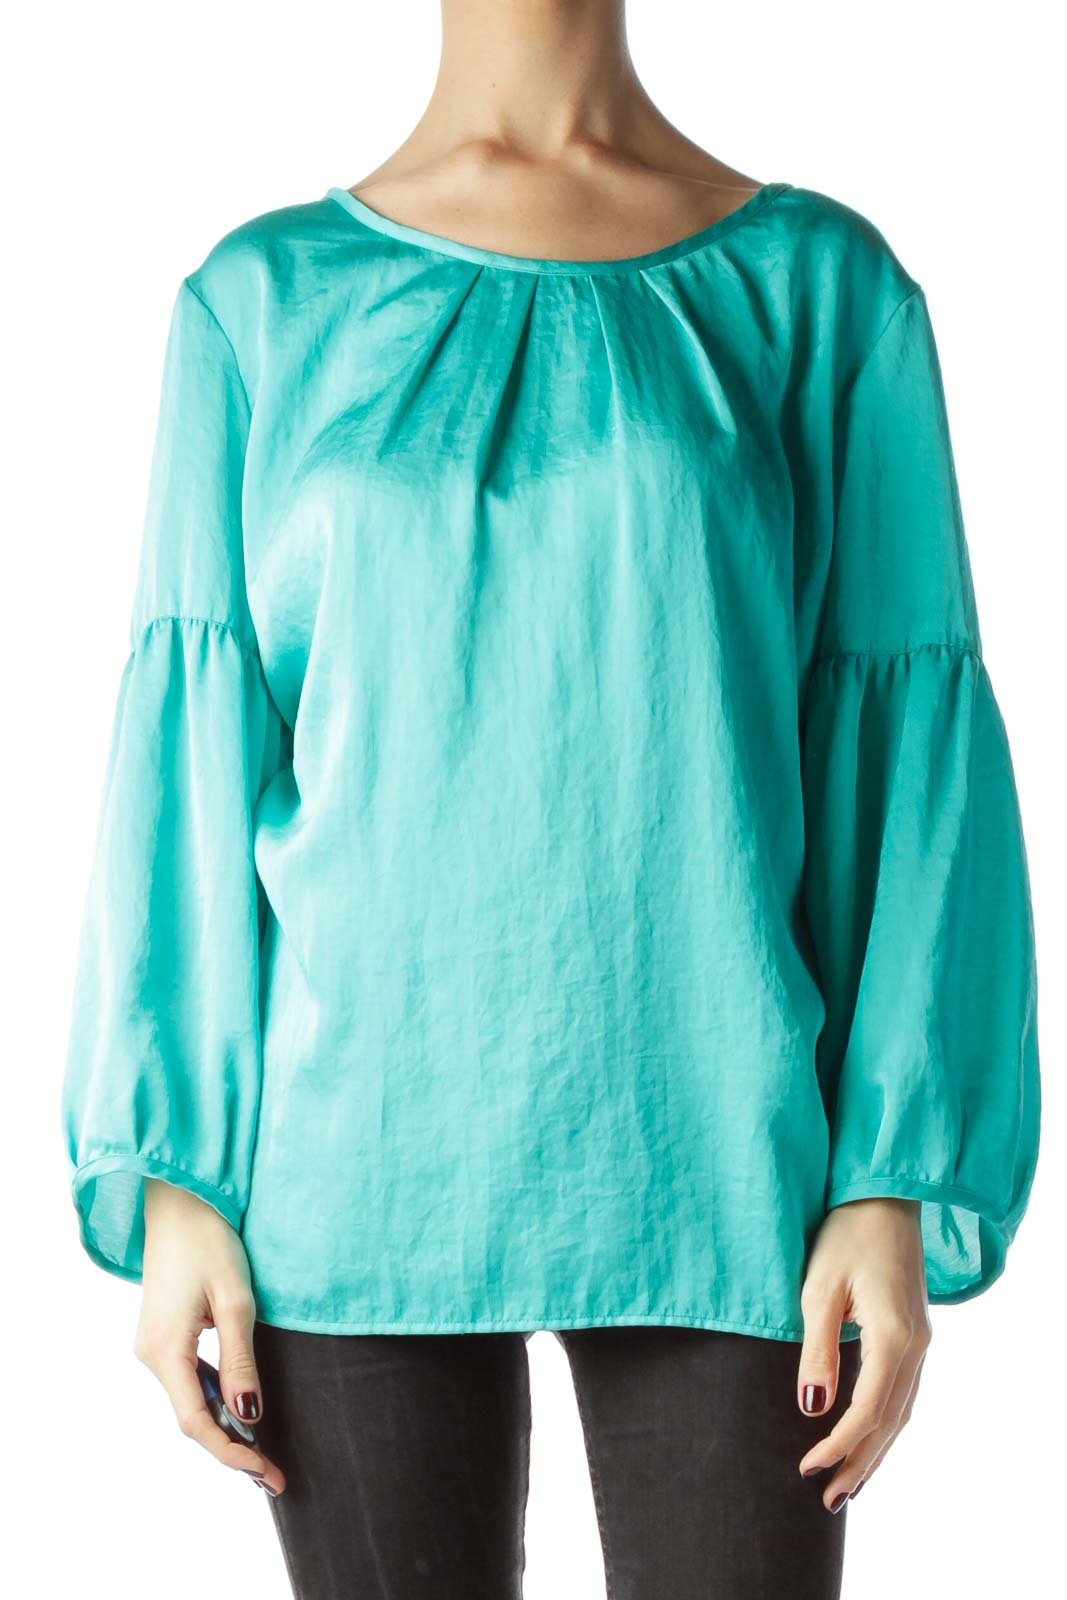 Mint Green Neckline Pleats Shiny Blouse